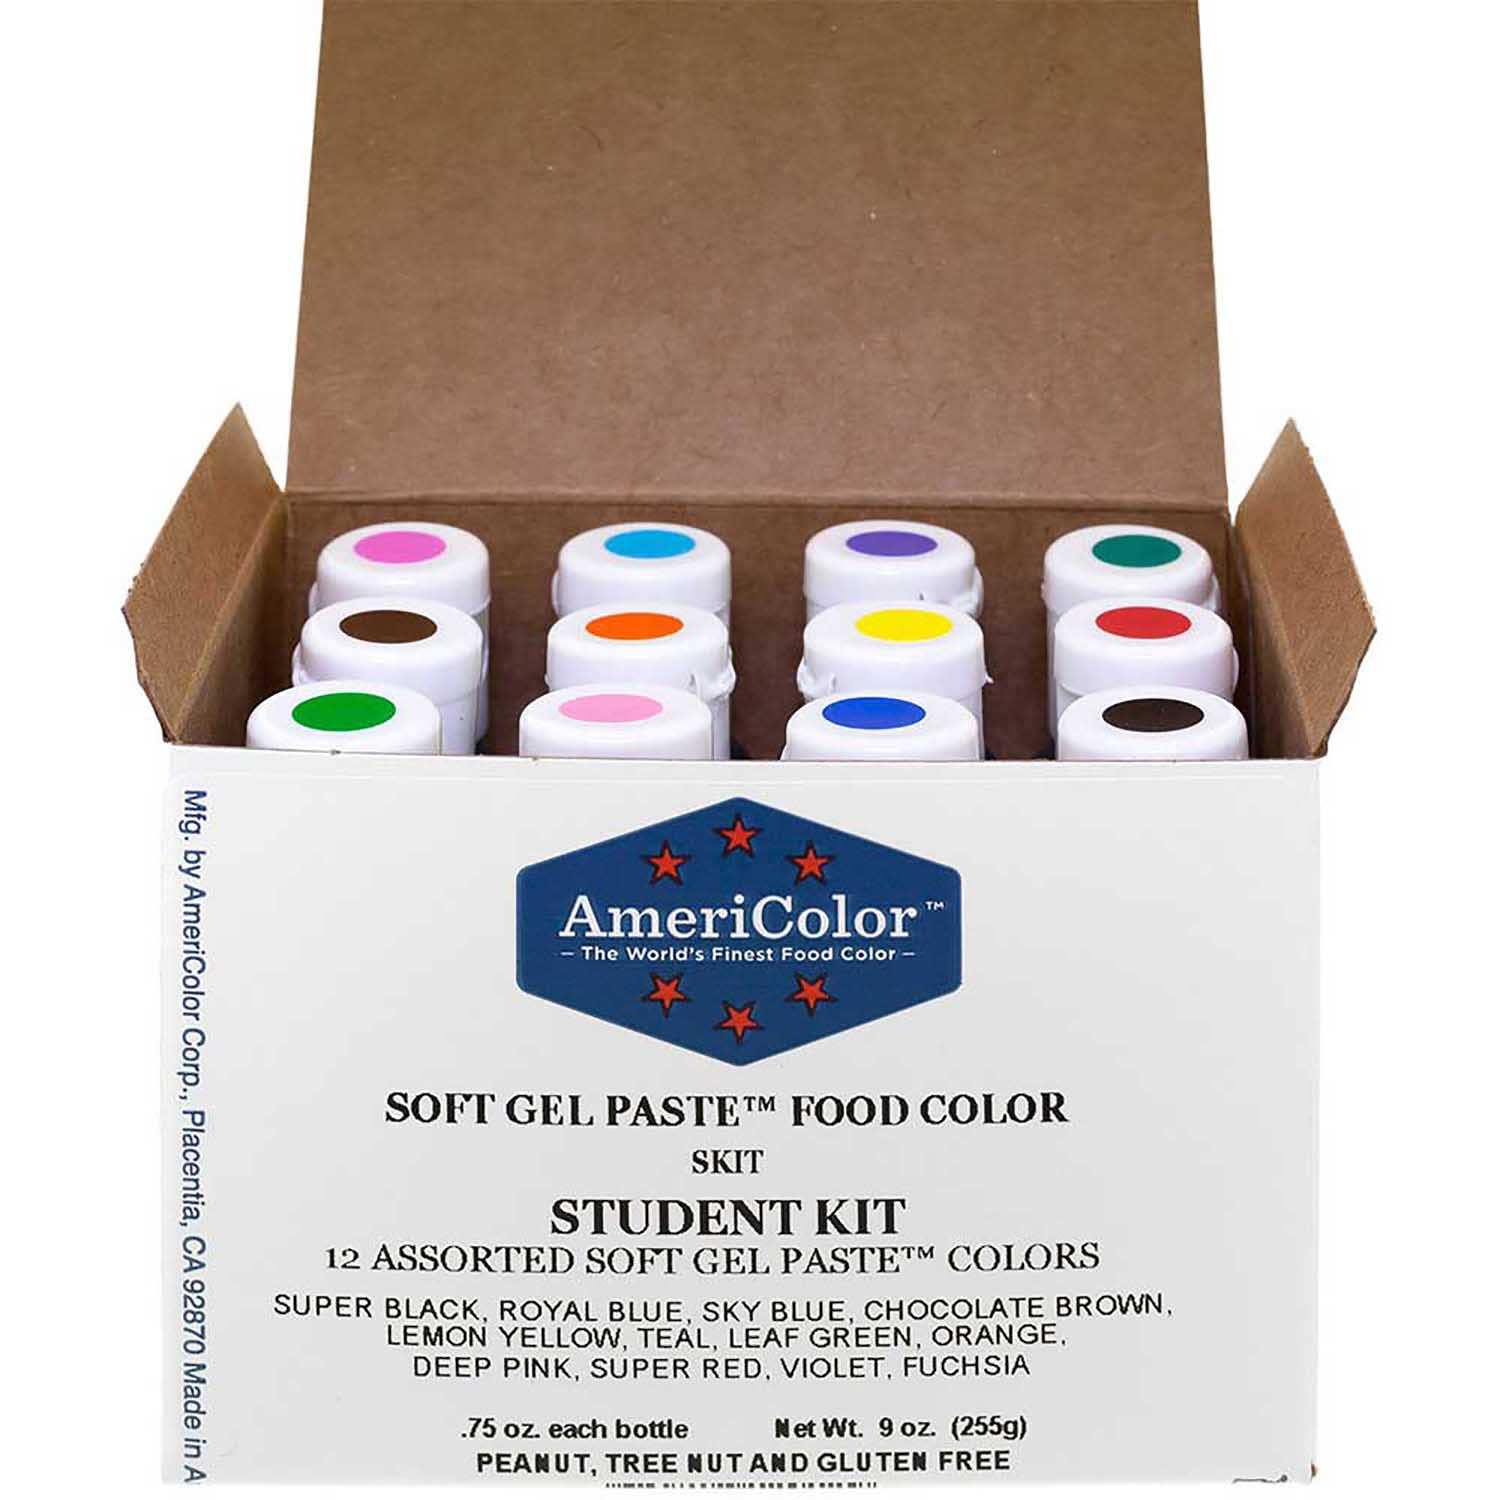 Student AmeriColor® Soft Gel Paste™ Food Color Kit